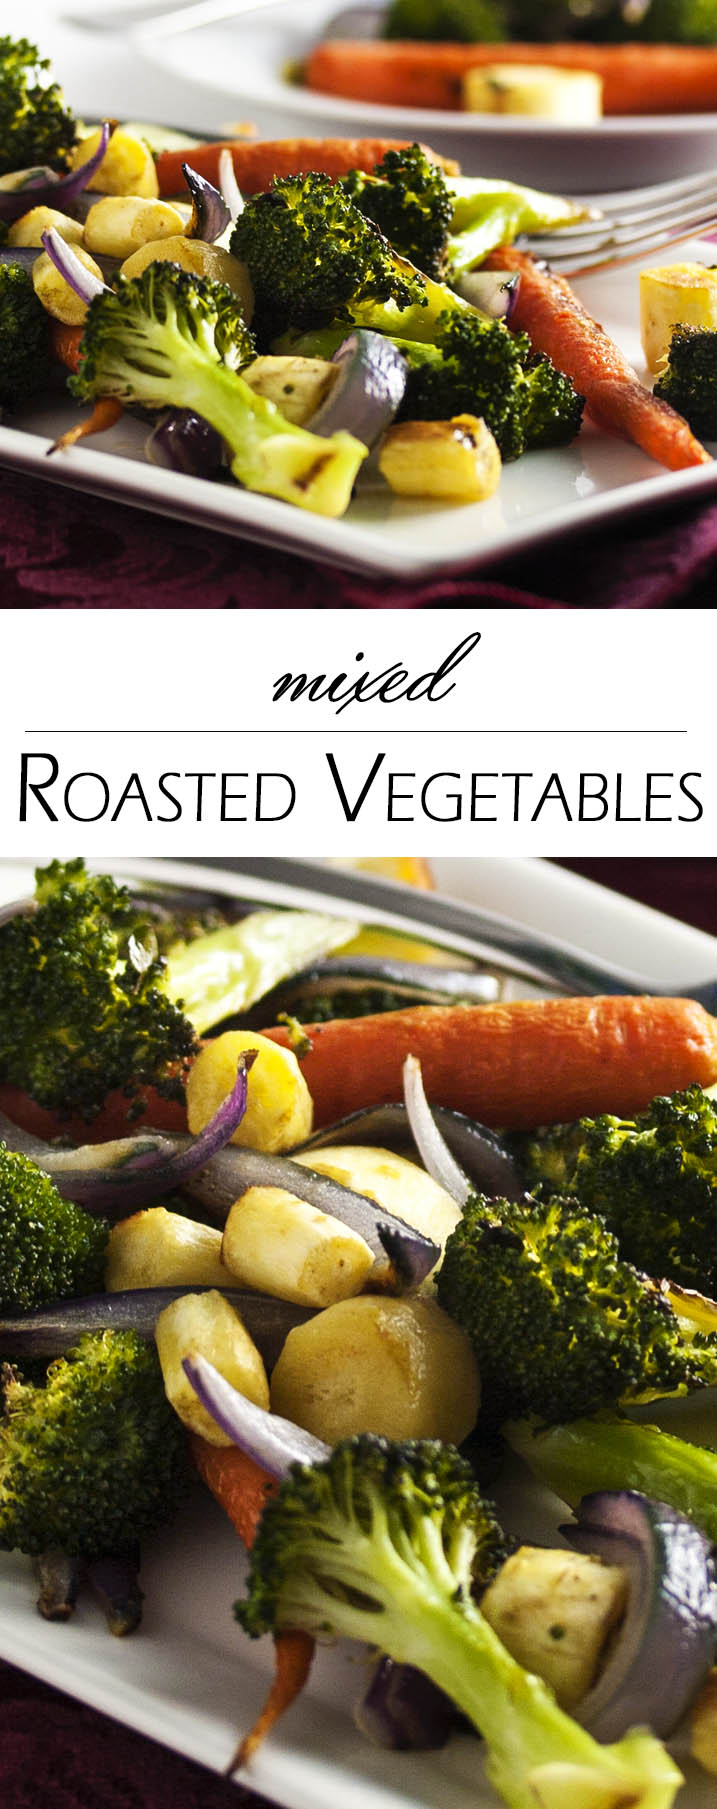 Simple Roasted Mixed Vegetables - Roasting vegetables is one of the best ways to cook vegetables since it makes them all caramelized and crispy on the outside while leaving them tender in the middle. Simple enough to have as a side on a weeknight and tasty enough to serve to company. | justalittlebitofbacon.com